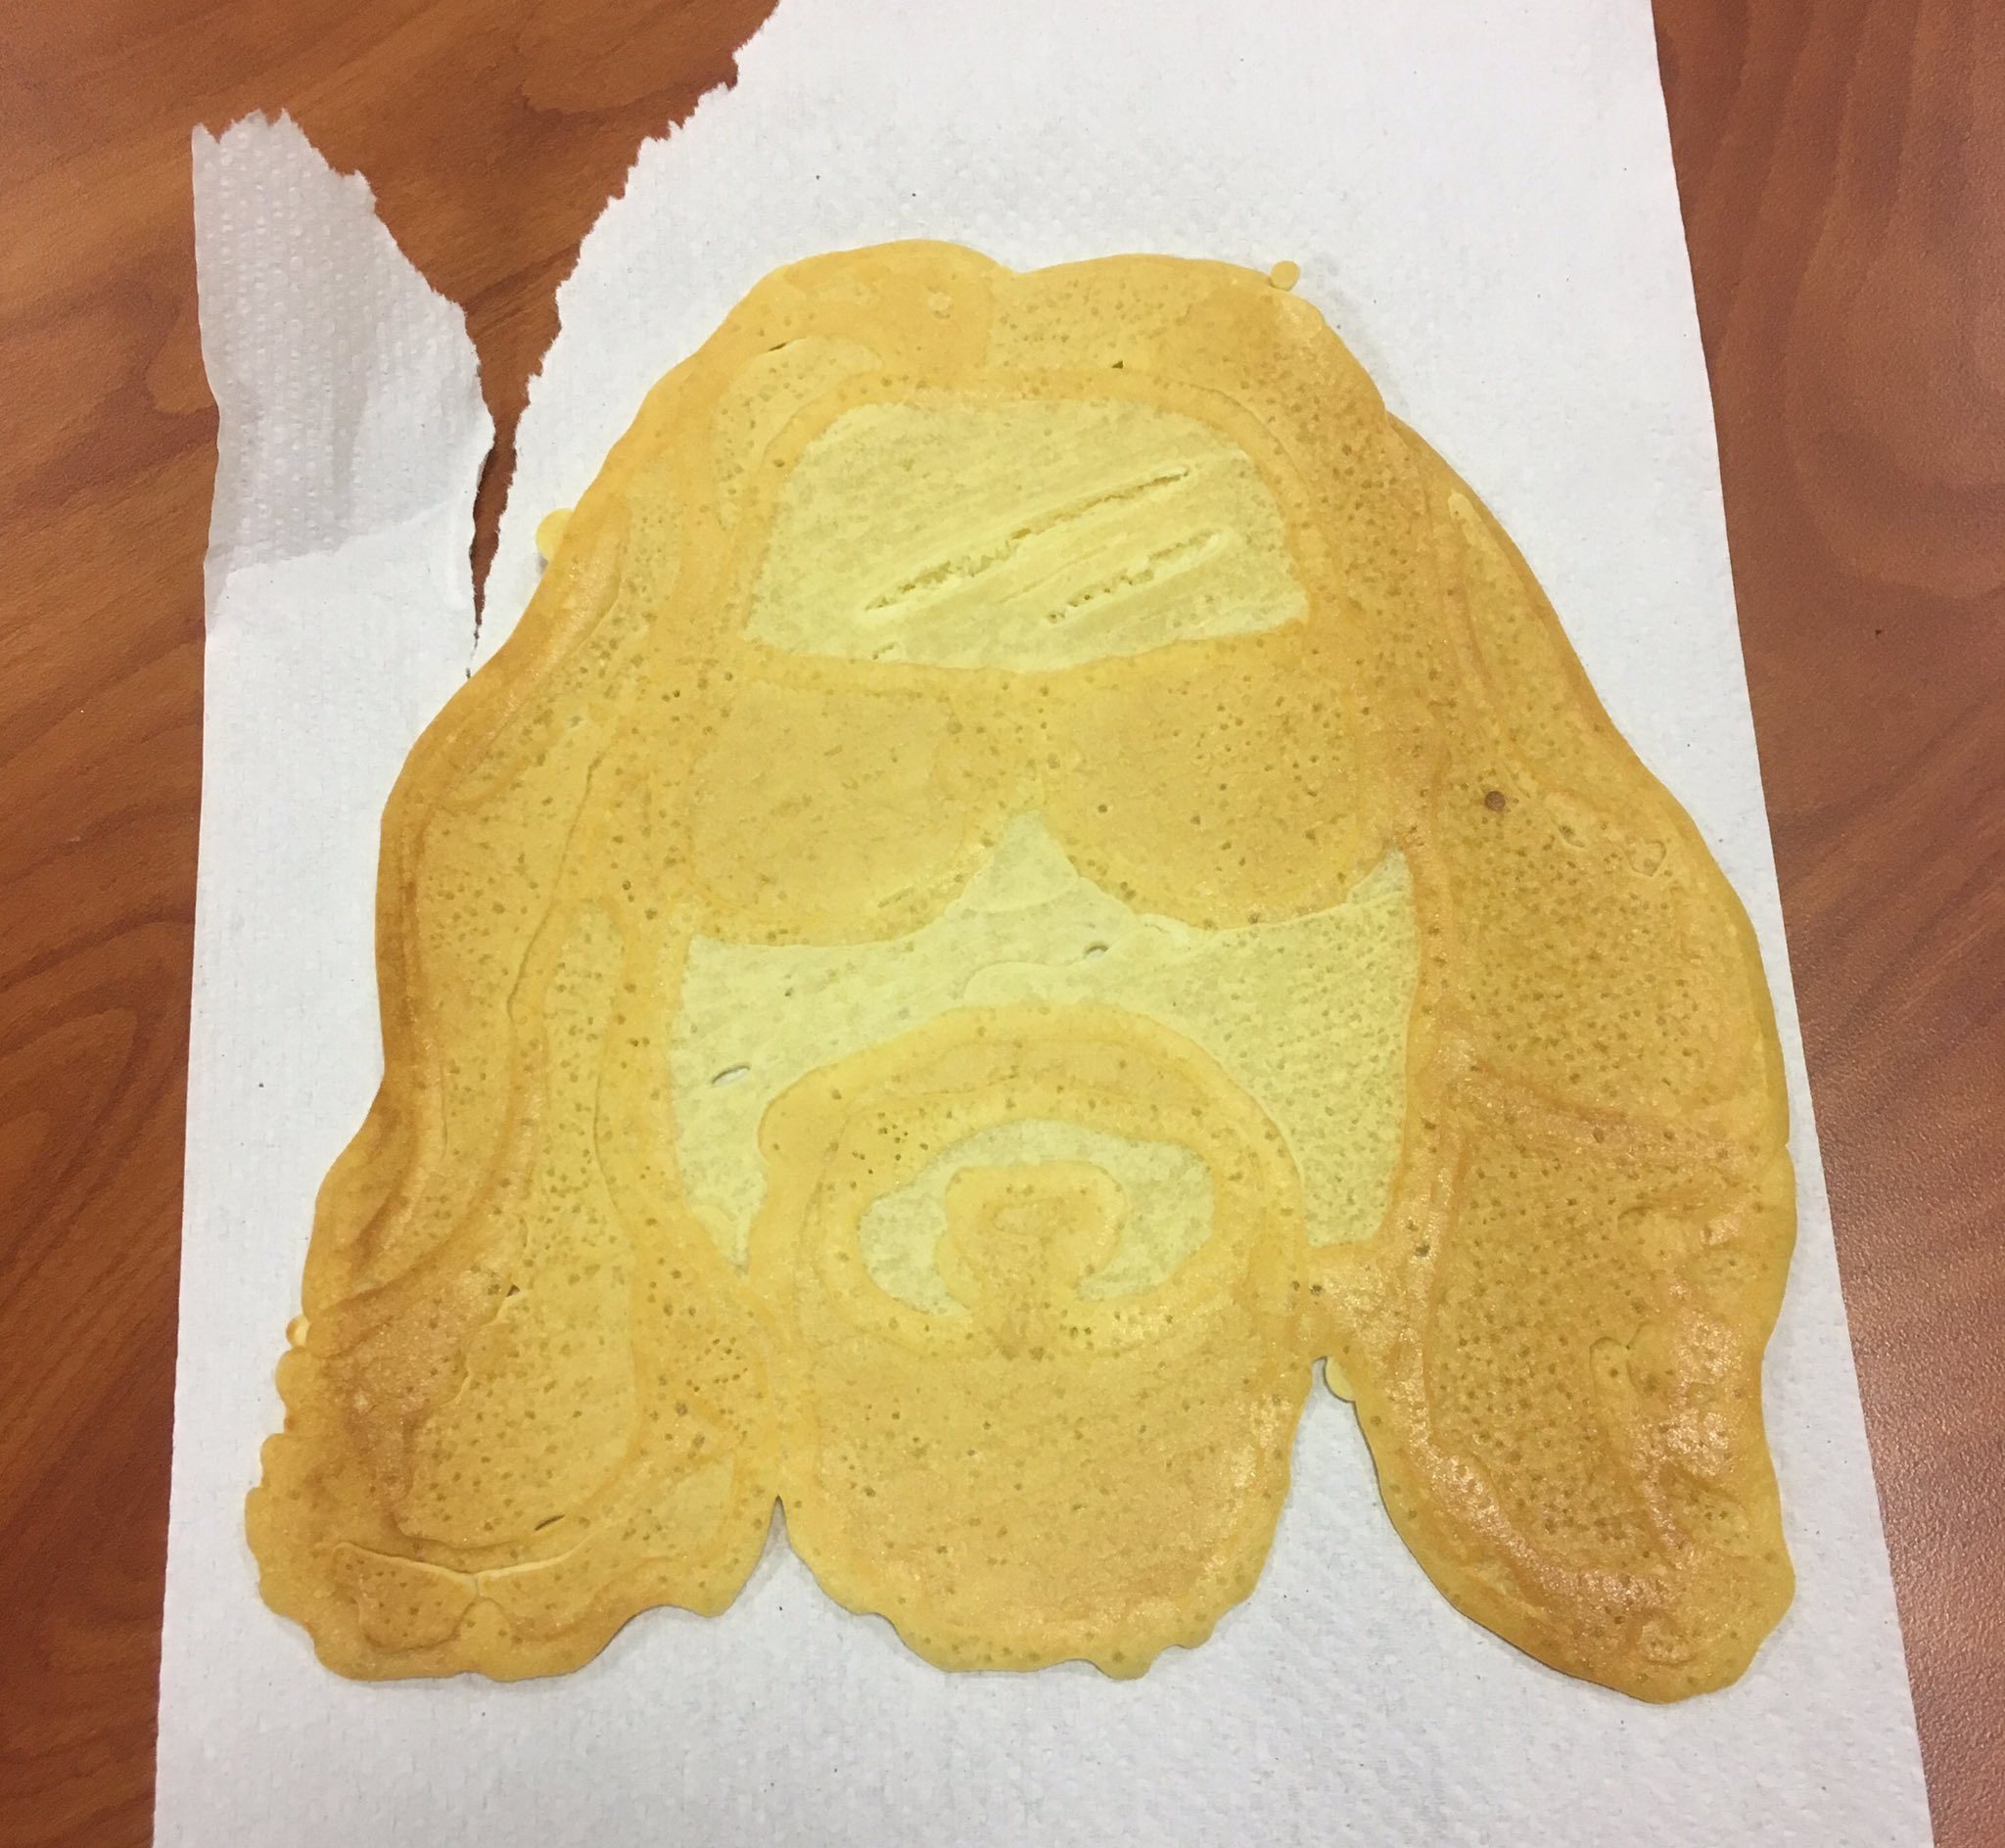 Pancake!Dude abides in #g4's #G4thering at #cwcon. This guy's ready to roll tonight. 🎳🍻He was delicious. https://t.co/9J9t3HSlRm